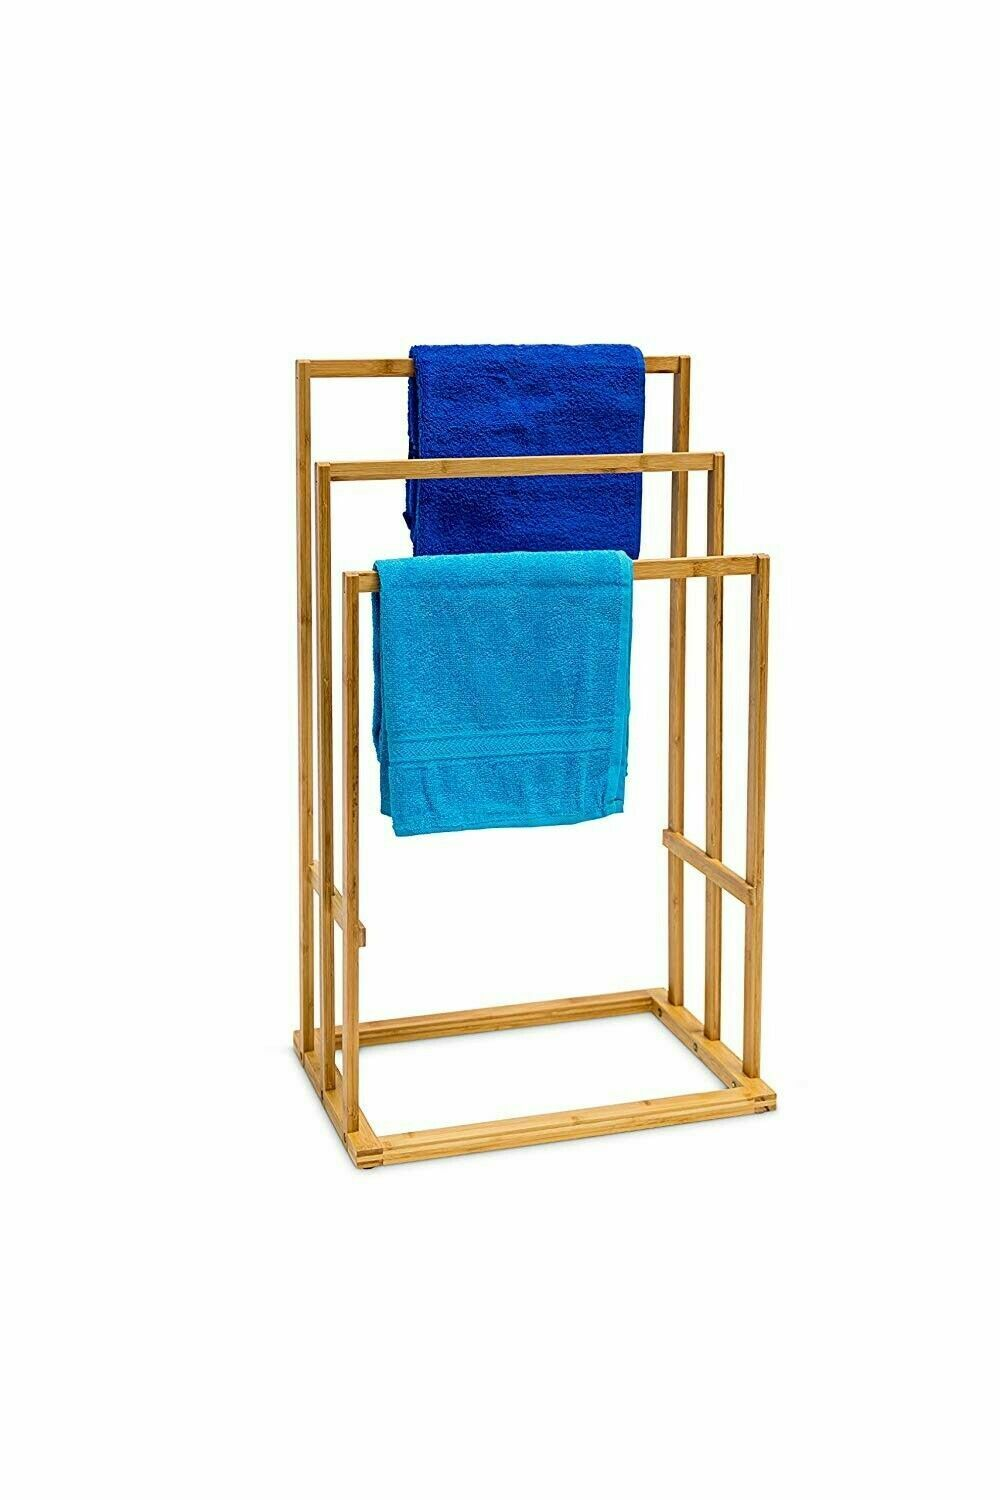 3 Tier Bamboo Wood Wooden Towel Holder Rail Stand Drying Rack Free Standing Bamboo Towels Towel Holder Free Standing Towel Holder